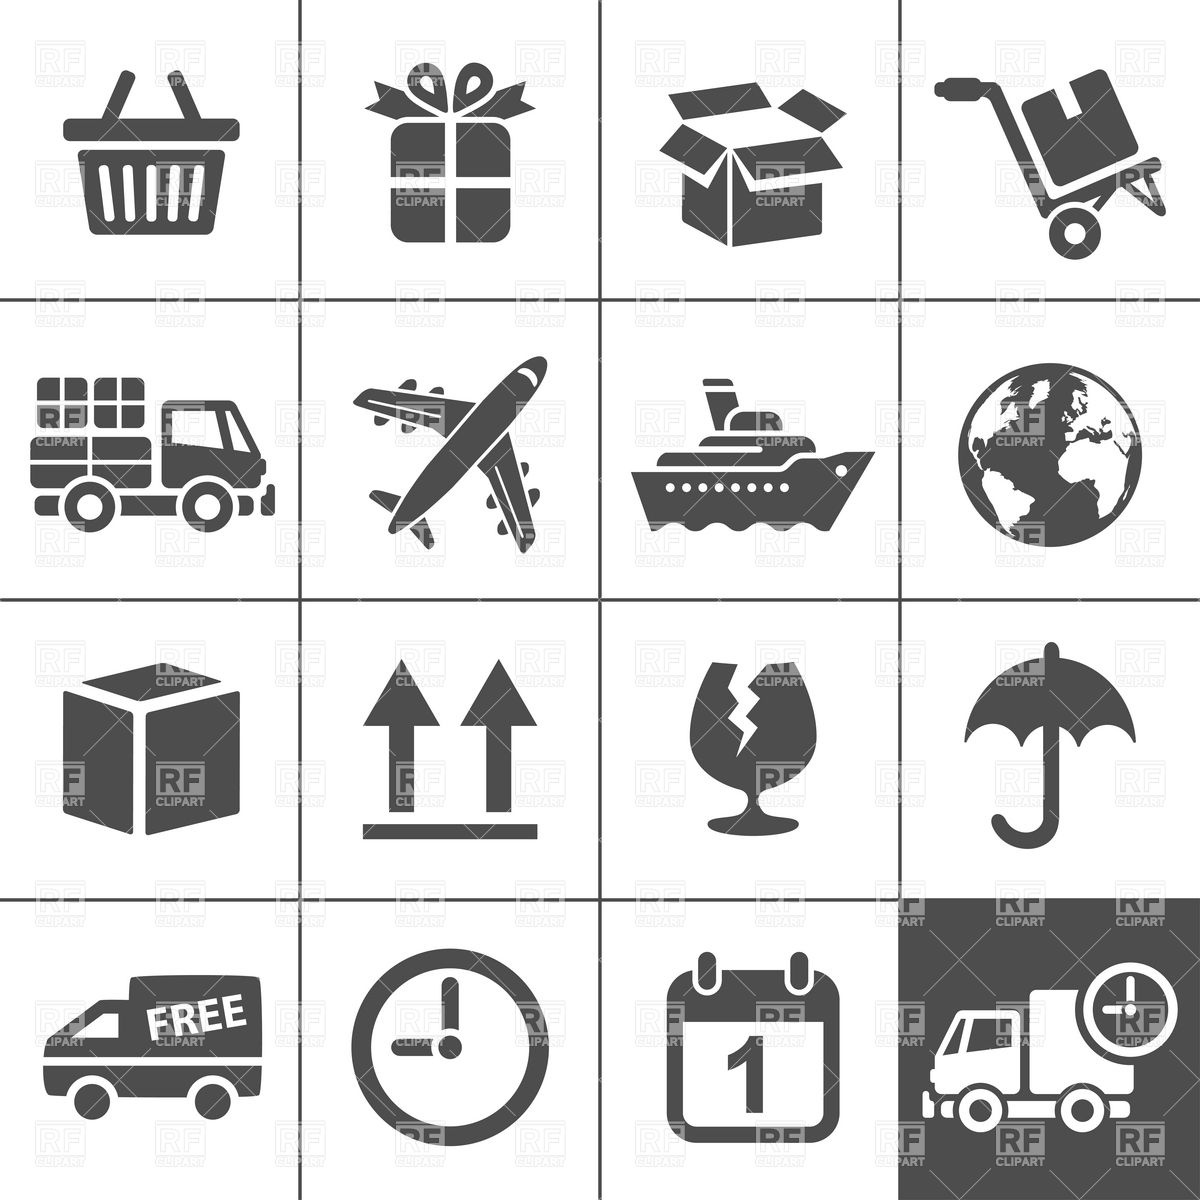 Logistic, delivery and transportation icons Vector Image #51747.